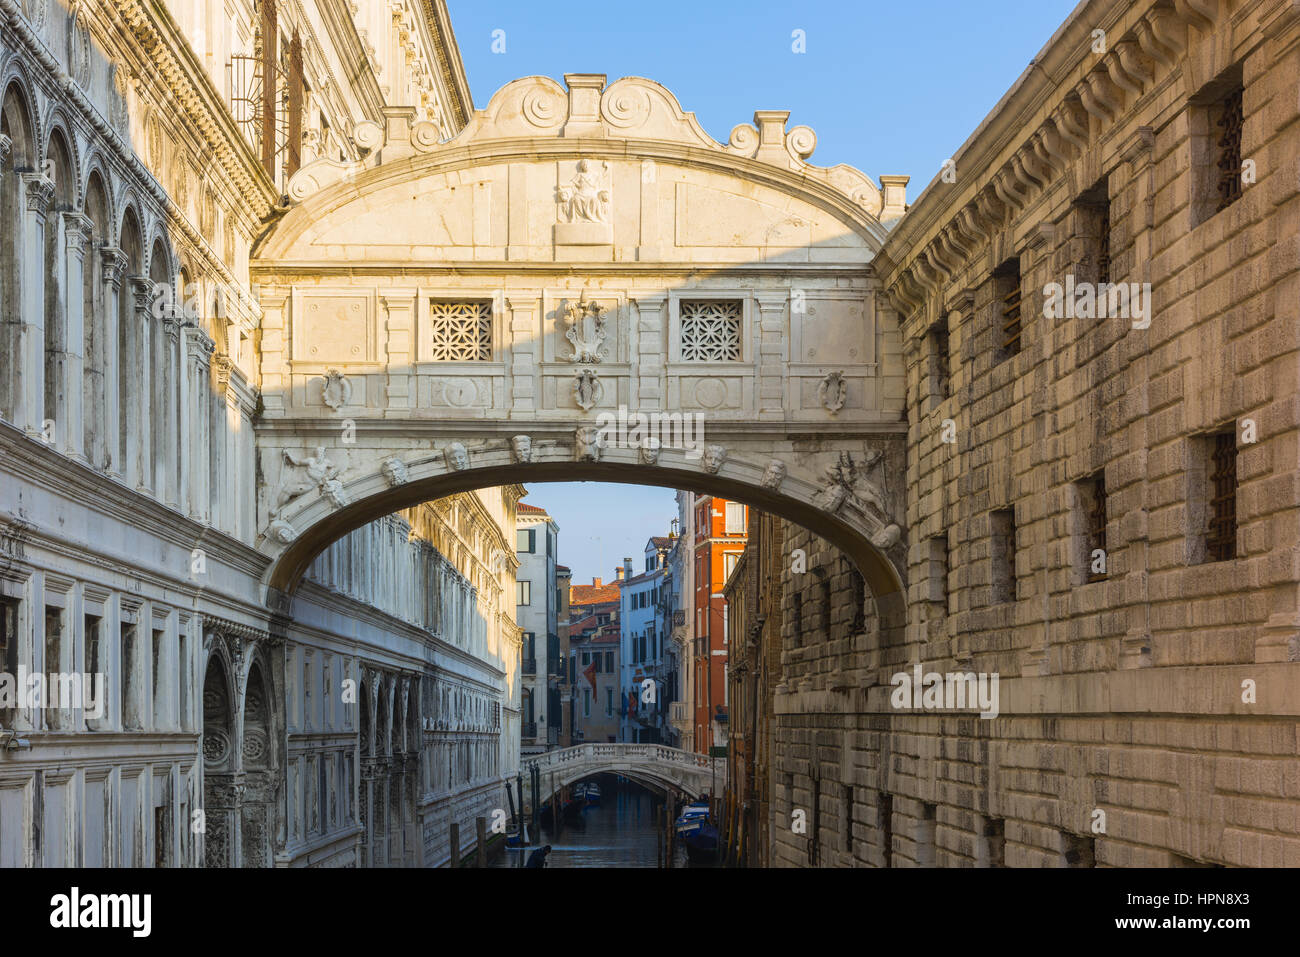 the ponte dei sospiri or bridge of sighs is a bridge that leads from the Prigioni Nuove to the doge's palace - Stock Image